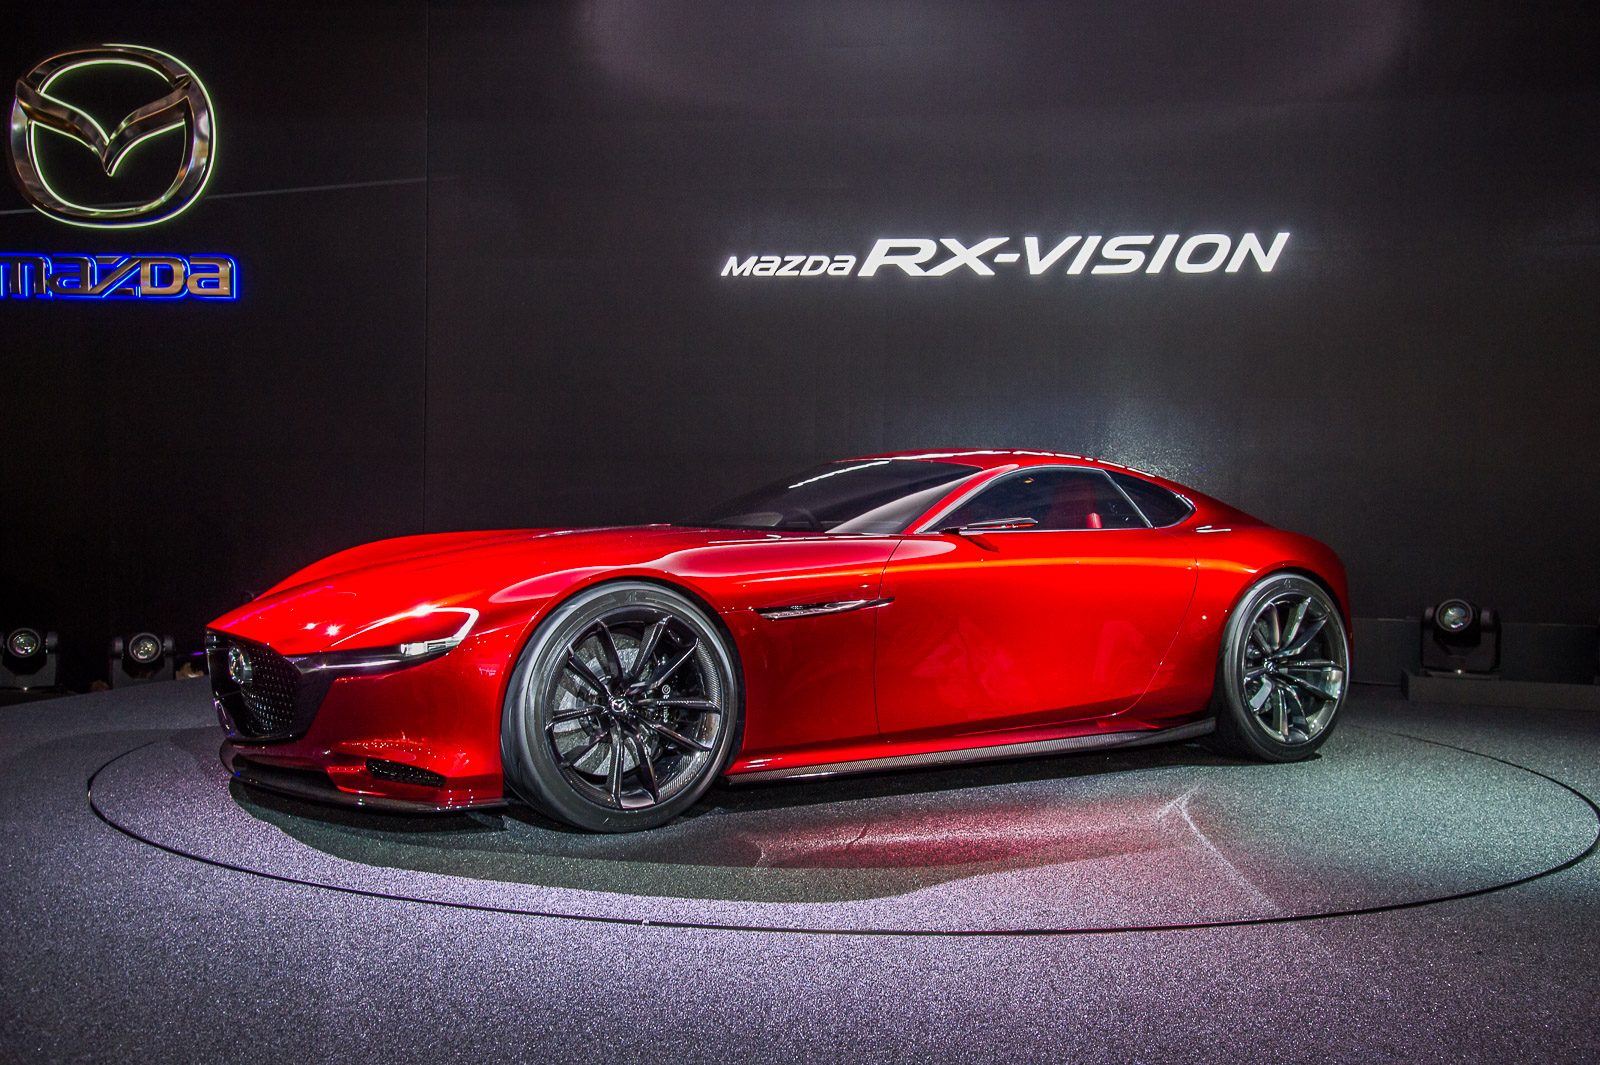 mazda rx vision rotary engined sports car concept revealed autocar Modern Rotary Engine